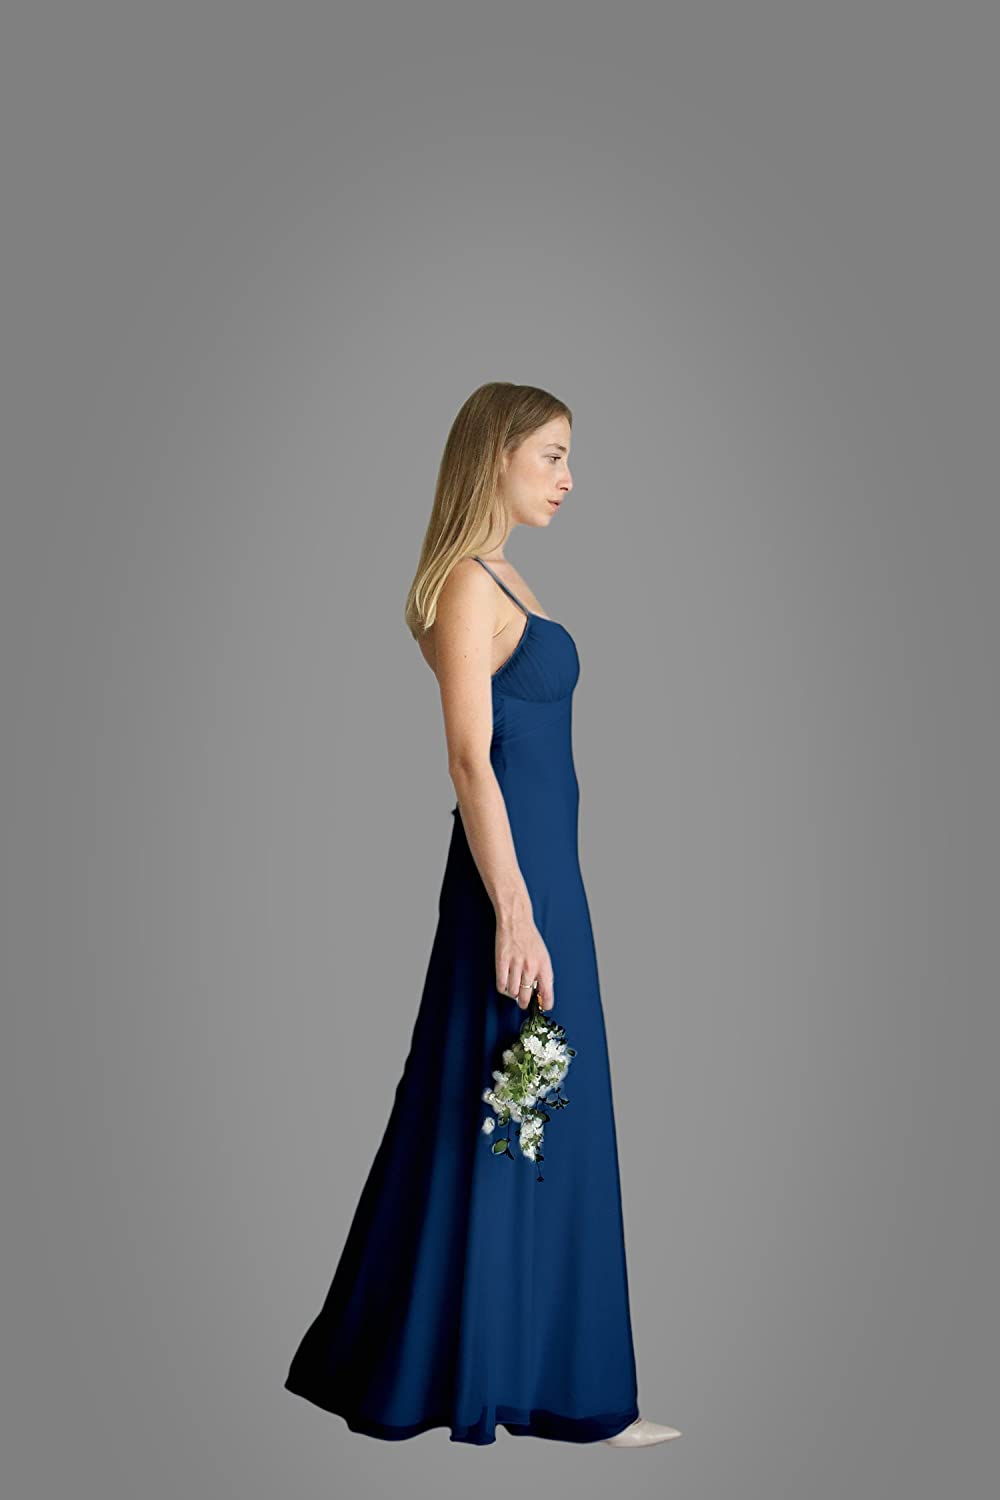 7def948b7f4e7 Top1: Handmade Women's Dress, Navy Blue Evening Dress, Size S, Maxi Long  Dress for Wedding, Prom or Bridesmaid, Open-Back Chiffon Lycra Classic Gown  with ...